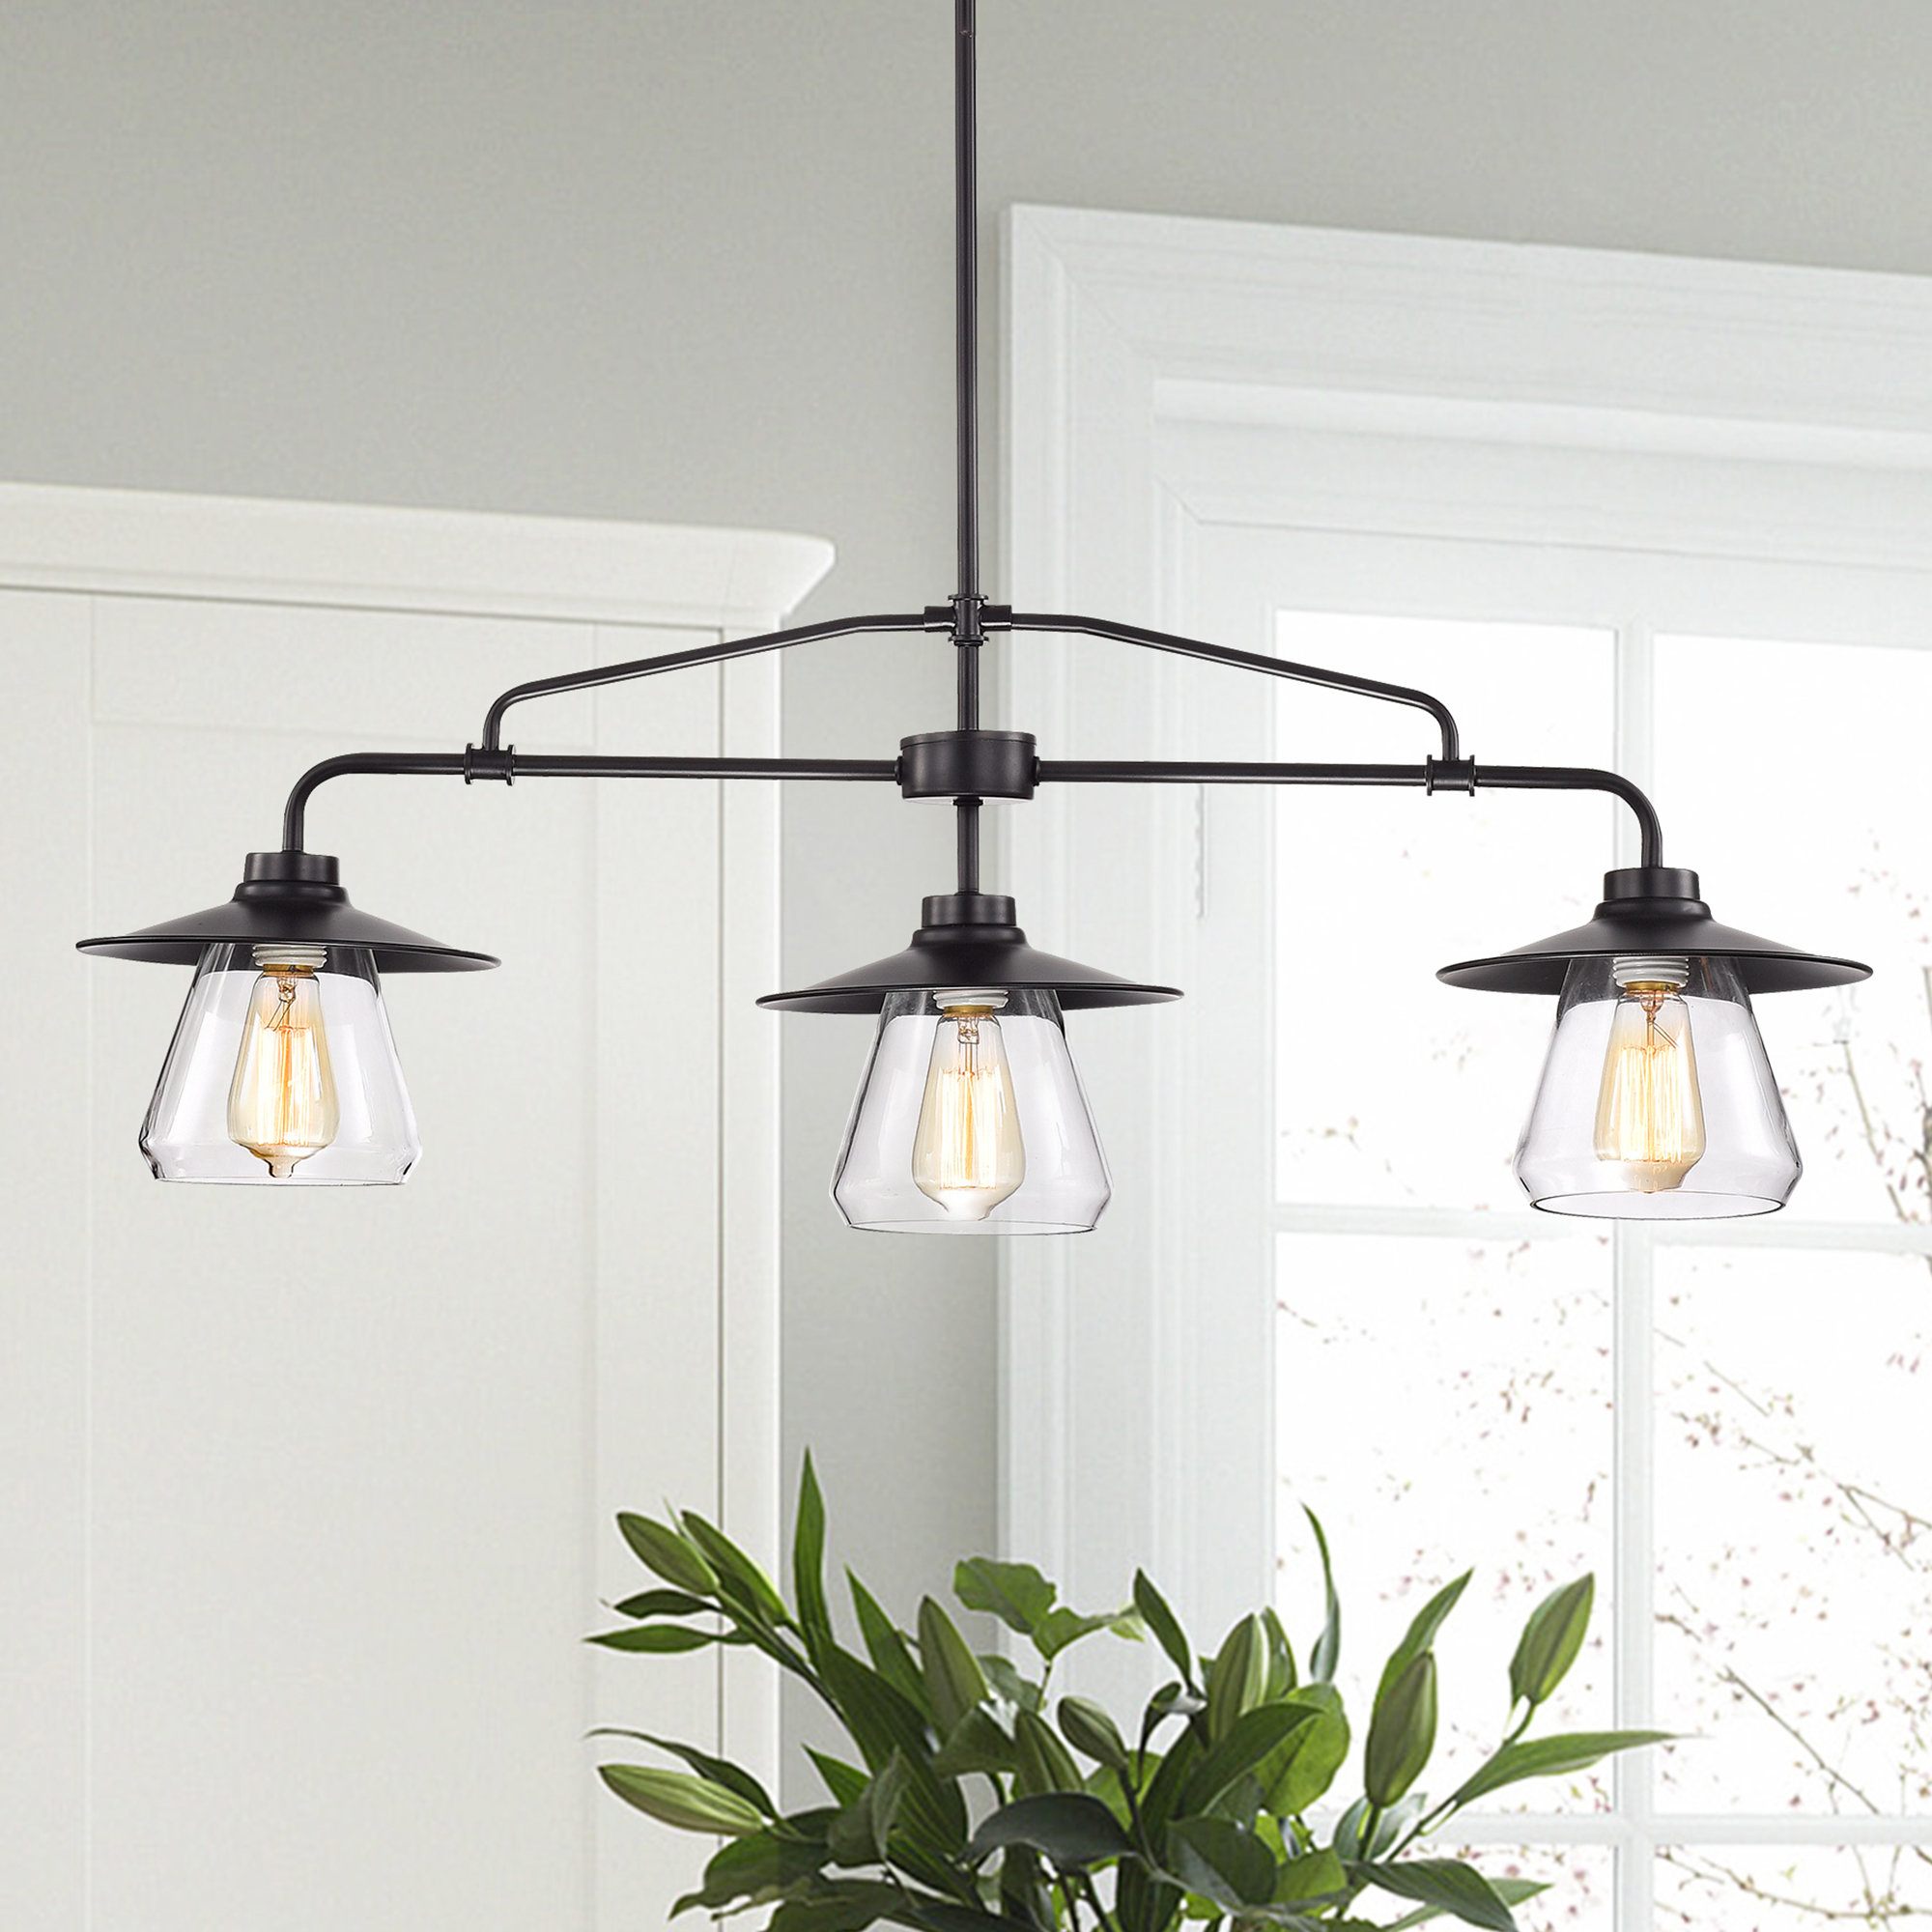 Kitchen Island Pendant Lighting Fixtures - Gnubies with regard to Ariel 2-Light Kitchen Island Dome Pendants (Image 21 of 30)